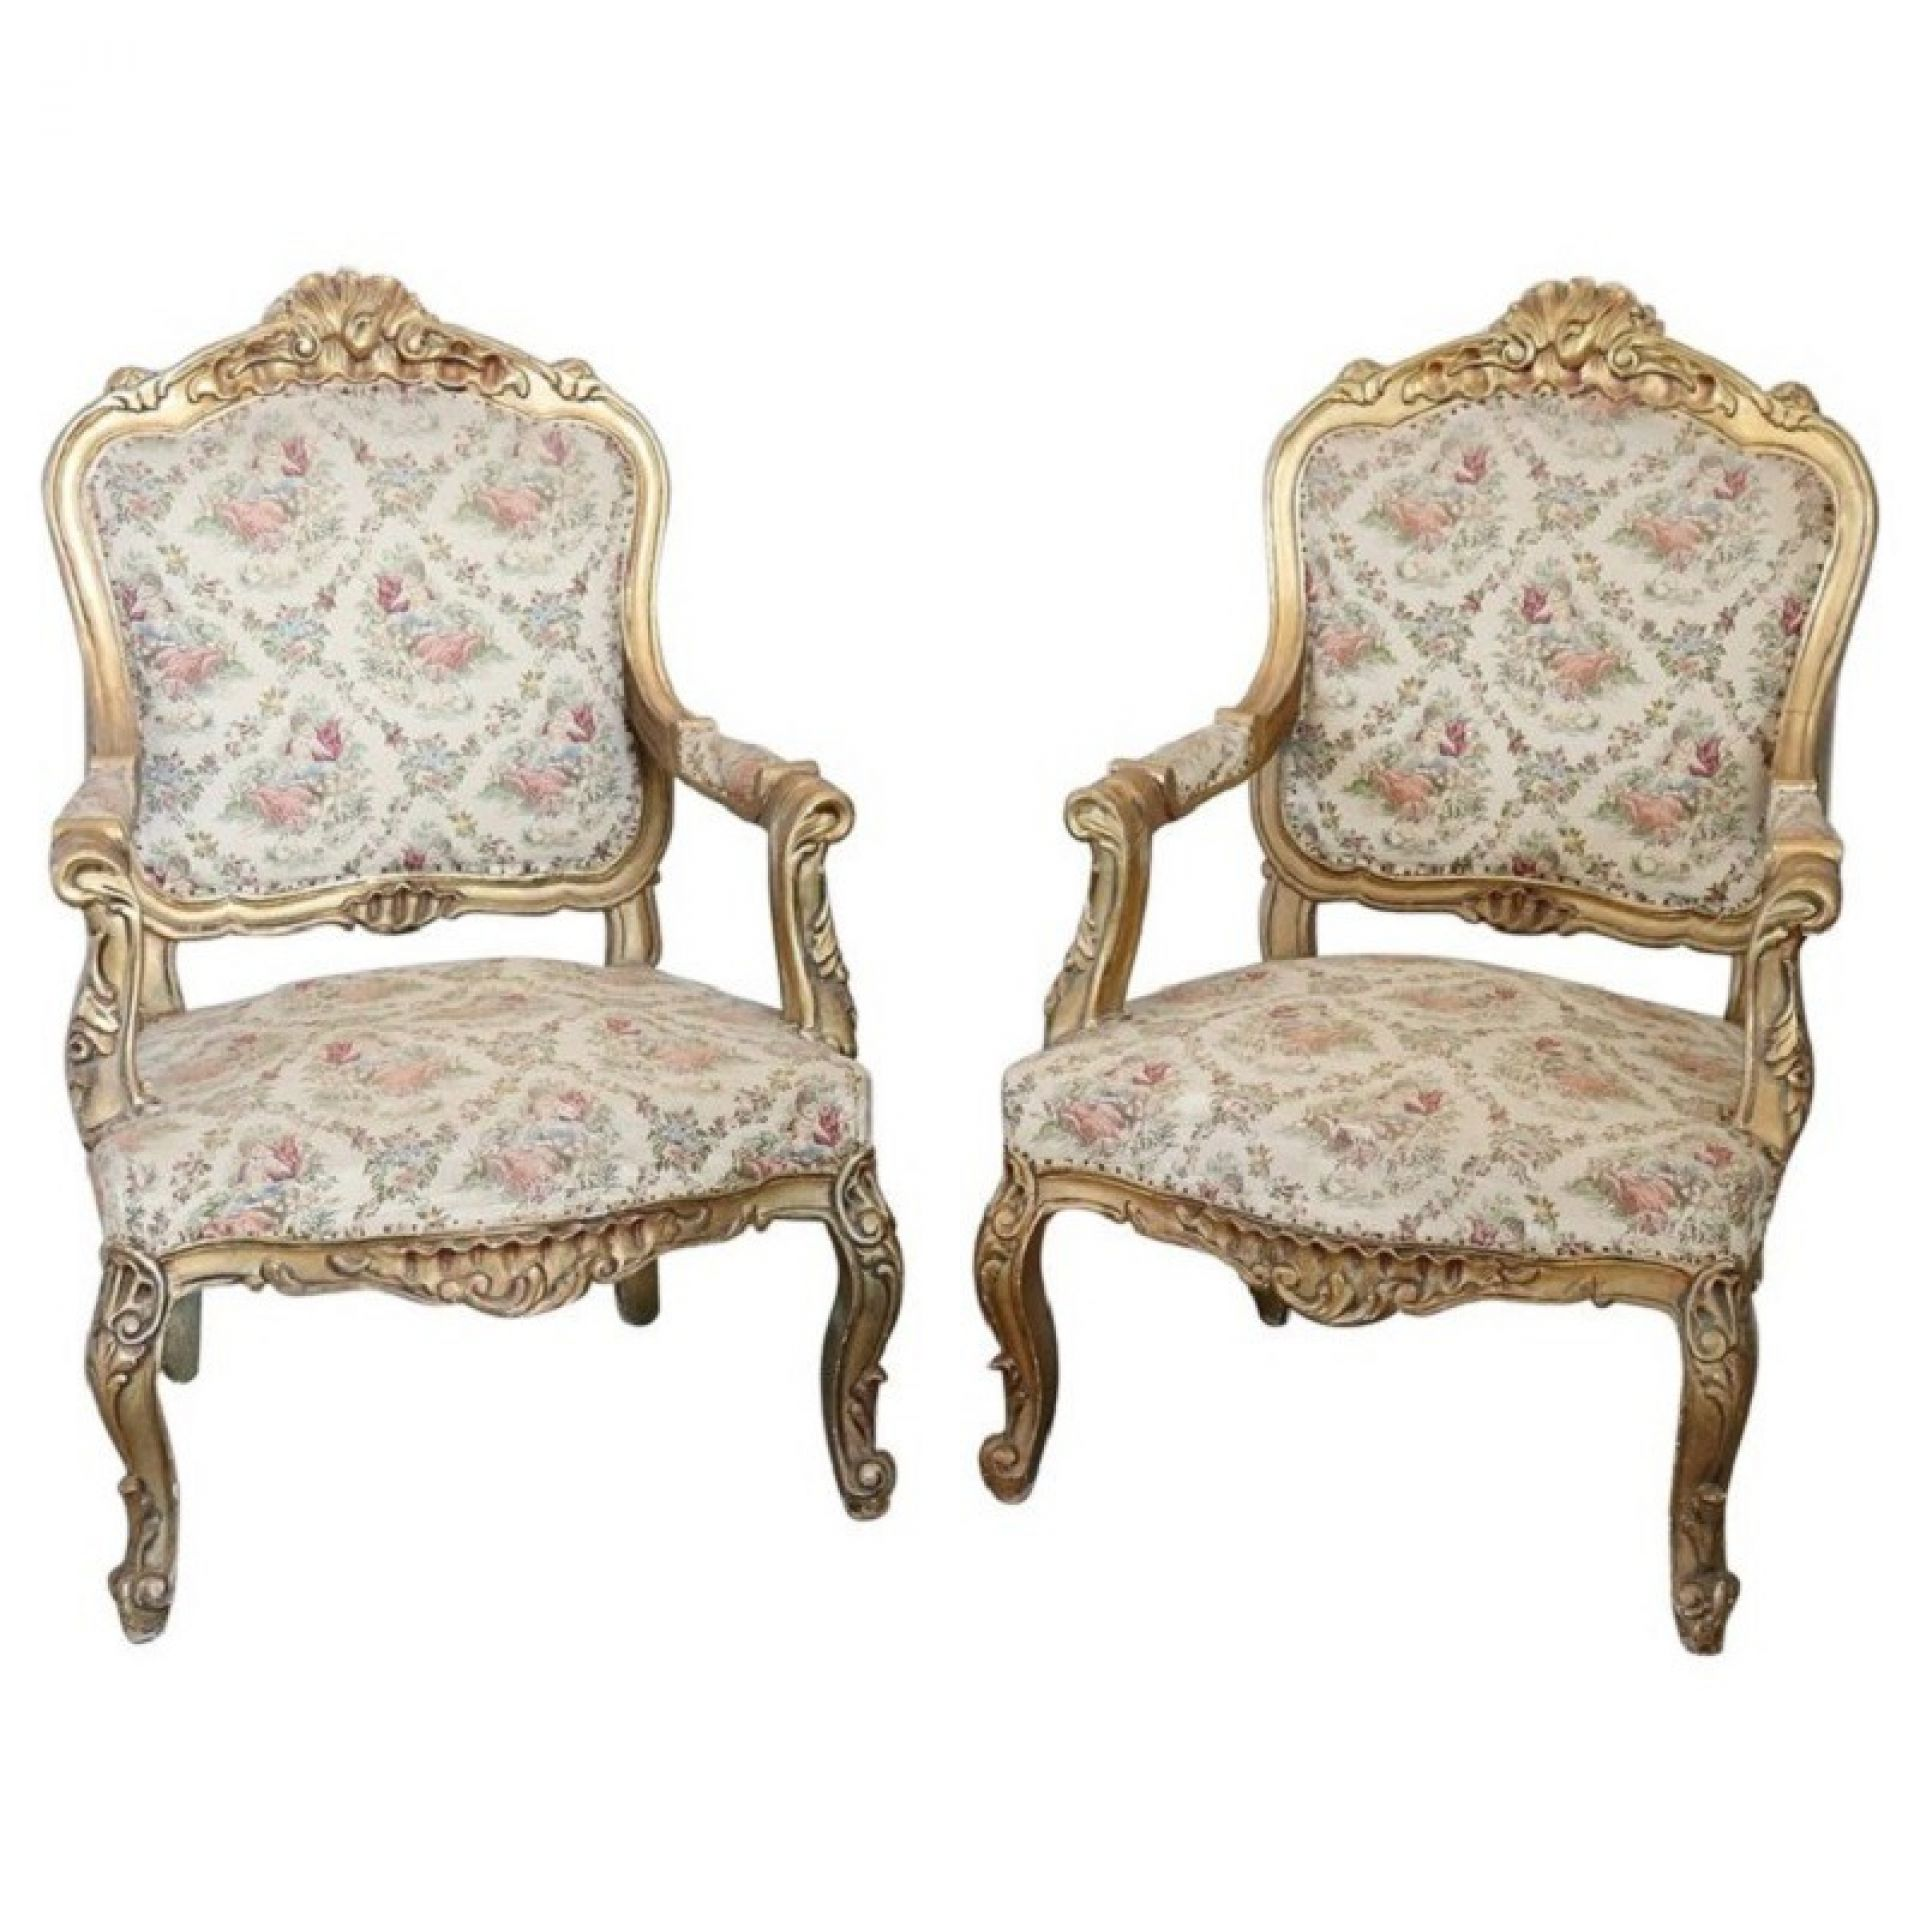 20th Century Italian Baroque Style Gilded Wood Pair of Armchairs